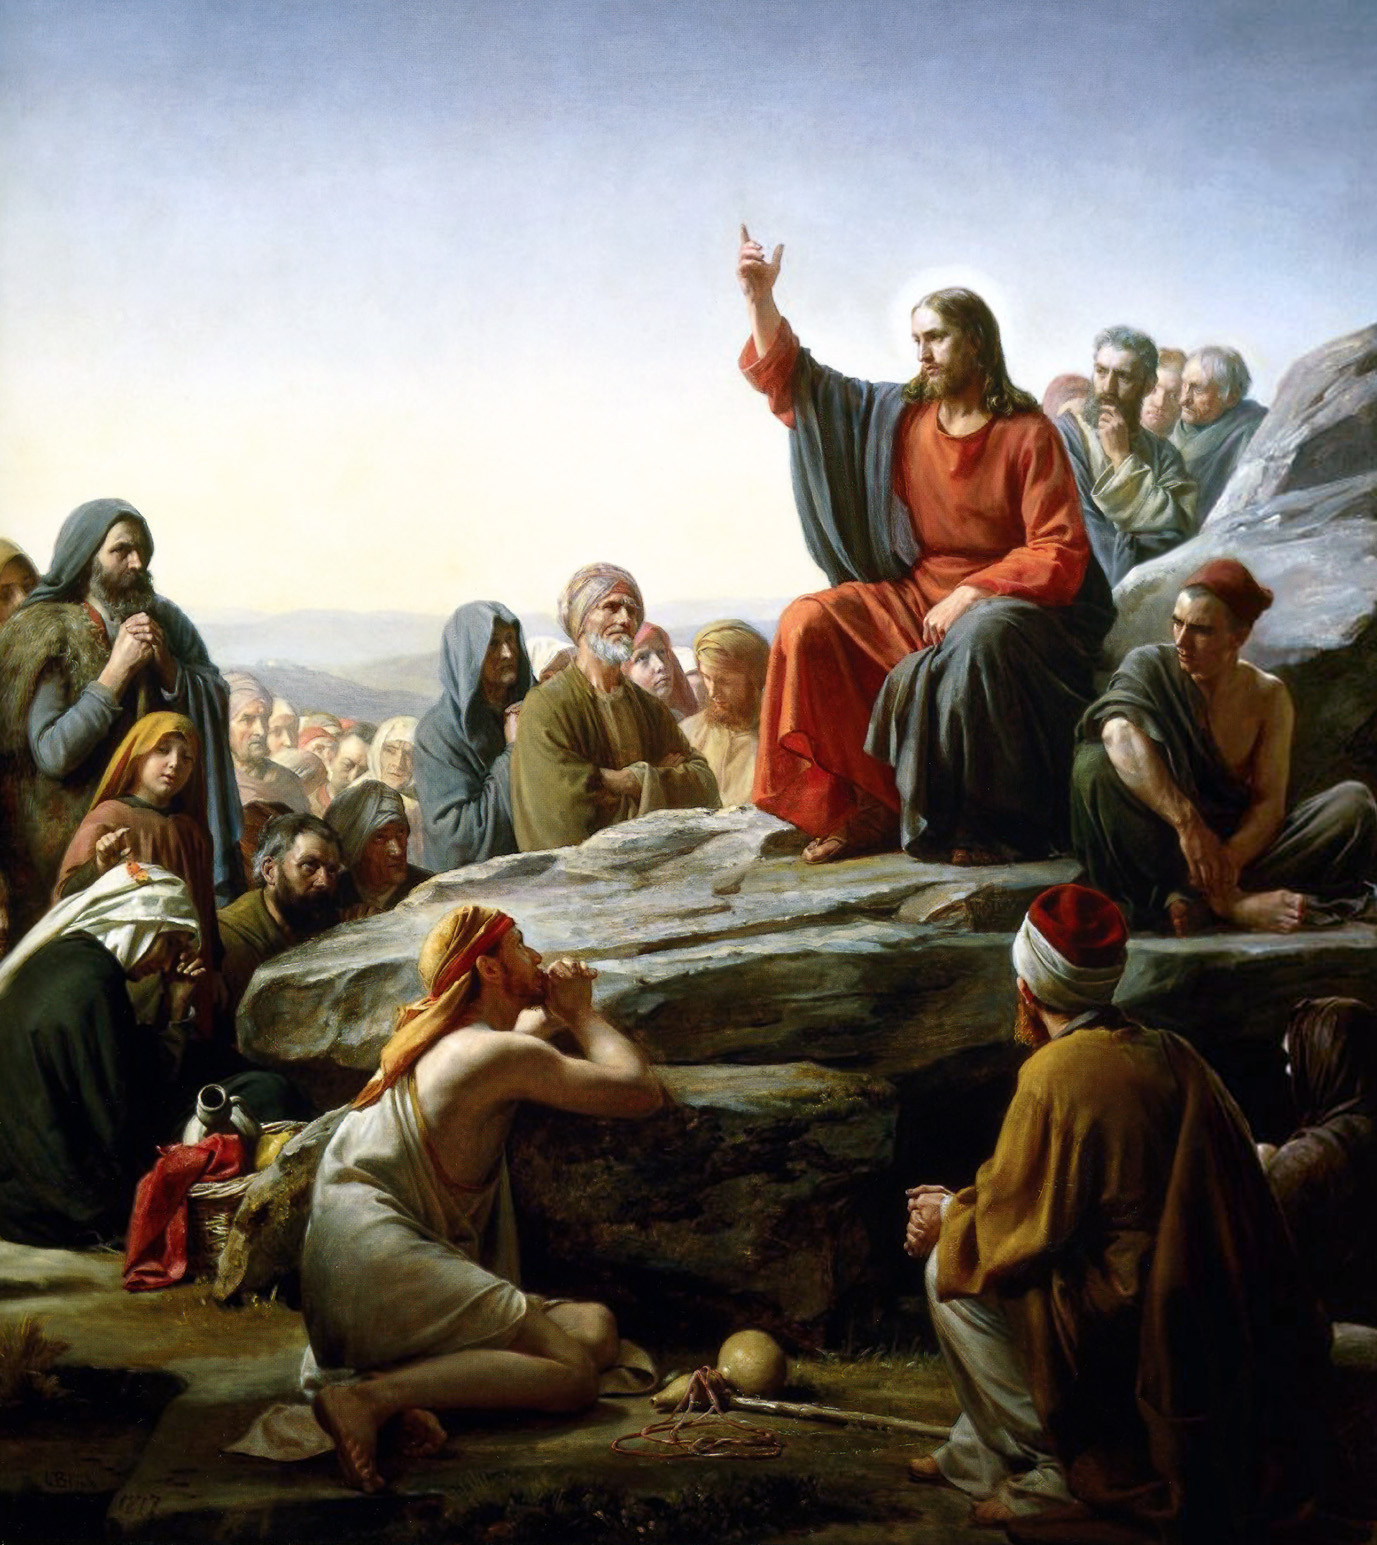 In his Sermon on the Mount, Matthew chapters 5 – 7, Jesus upset the whole Jewish social order by redefining the foundation of God's community. It is no longer the rich and powerful who find favor with God, but the poor, ill, infirm, oppressed and outcast. This Carl Bloch (1834-1890) painting titled  The Sermon on the Mount  is currently in the Museum of National History.   https://upload.wikimedia.org/wikipedia/commons/thumb/9/96/Bloch-SermonOnTheMount.jpg/800px-Bloch-SermonOnTheMount.jpg